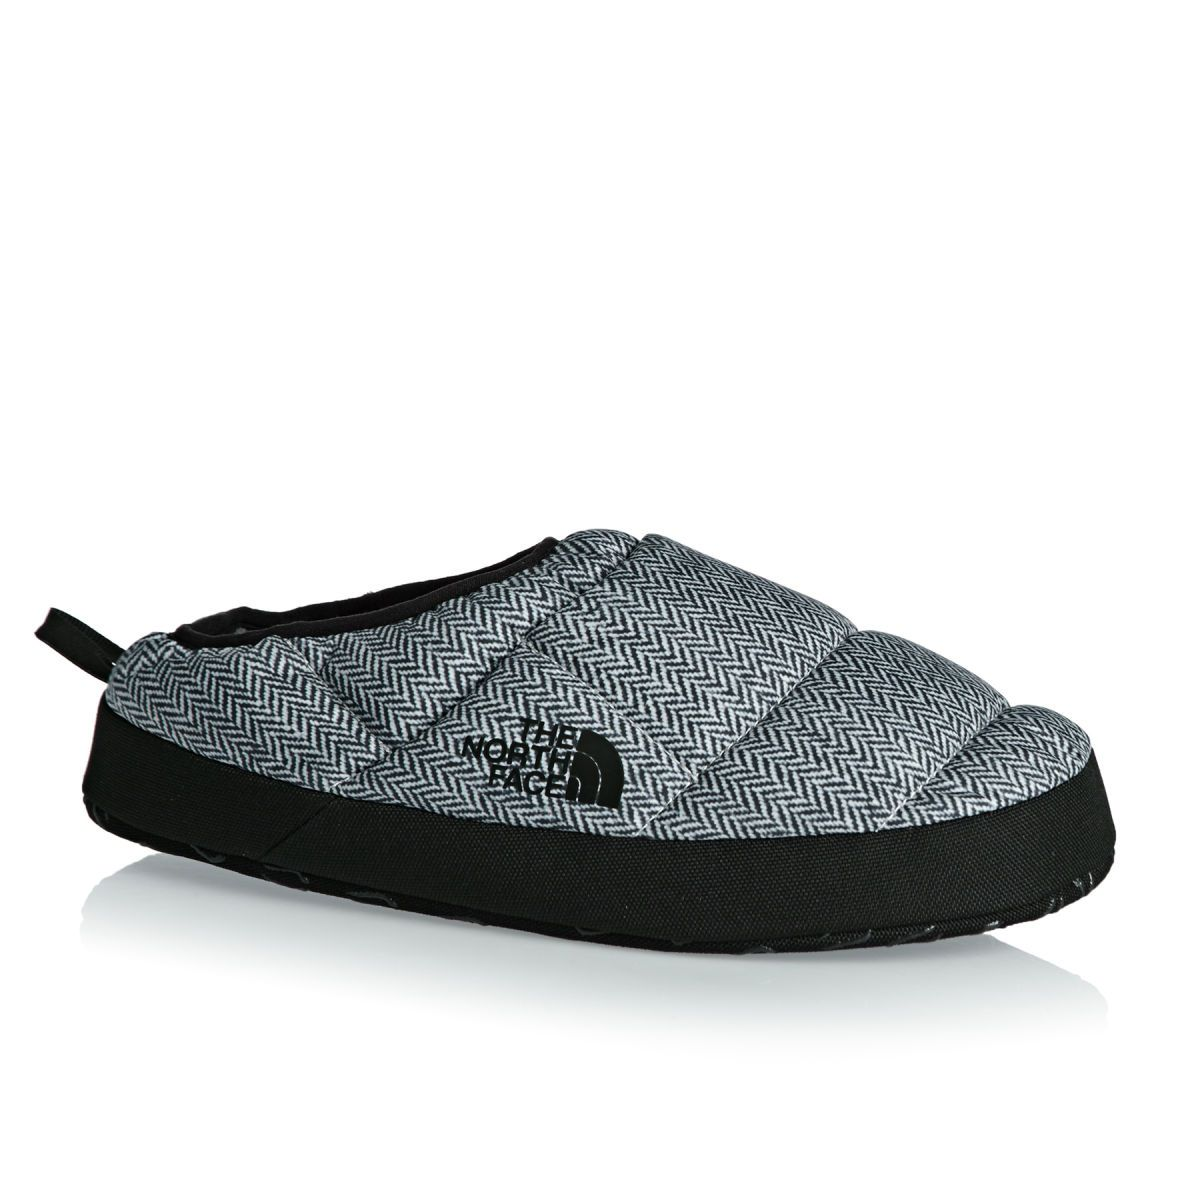 The North Face Nse Tent Mule III Slippers - Tnf Black Jumbo Herringbone Print/tnf  sc 1 st  Pinterest & The North Face Nse Tent Mule III Slippers - Tnf Black Jumbo ...